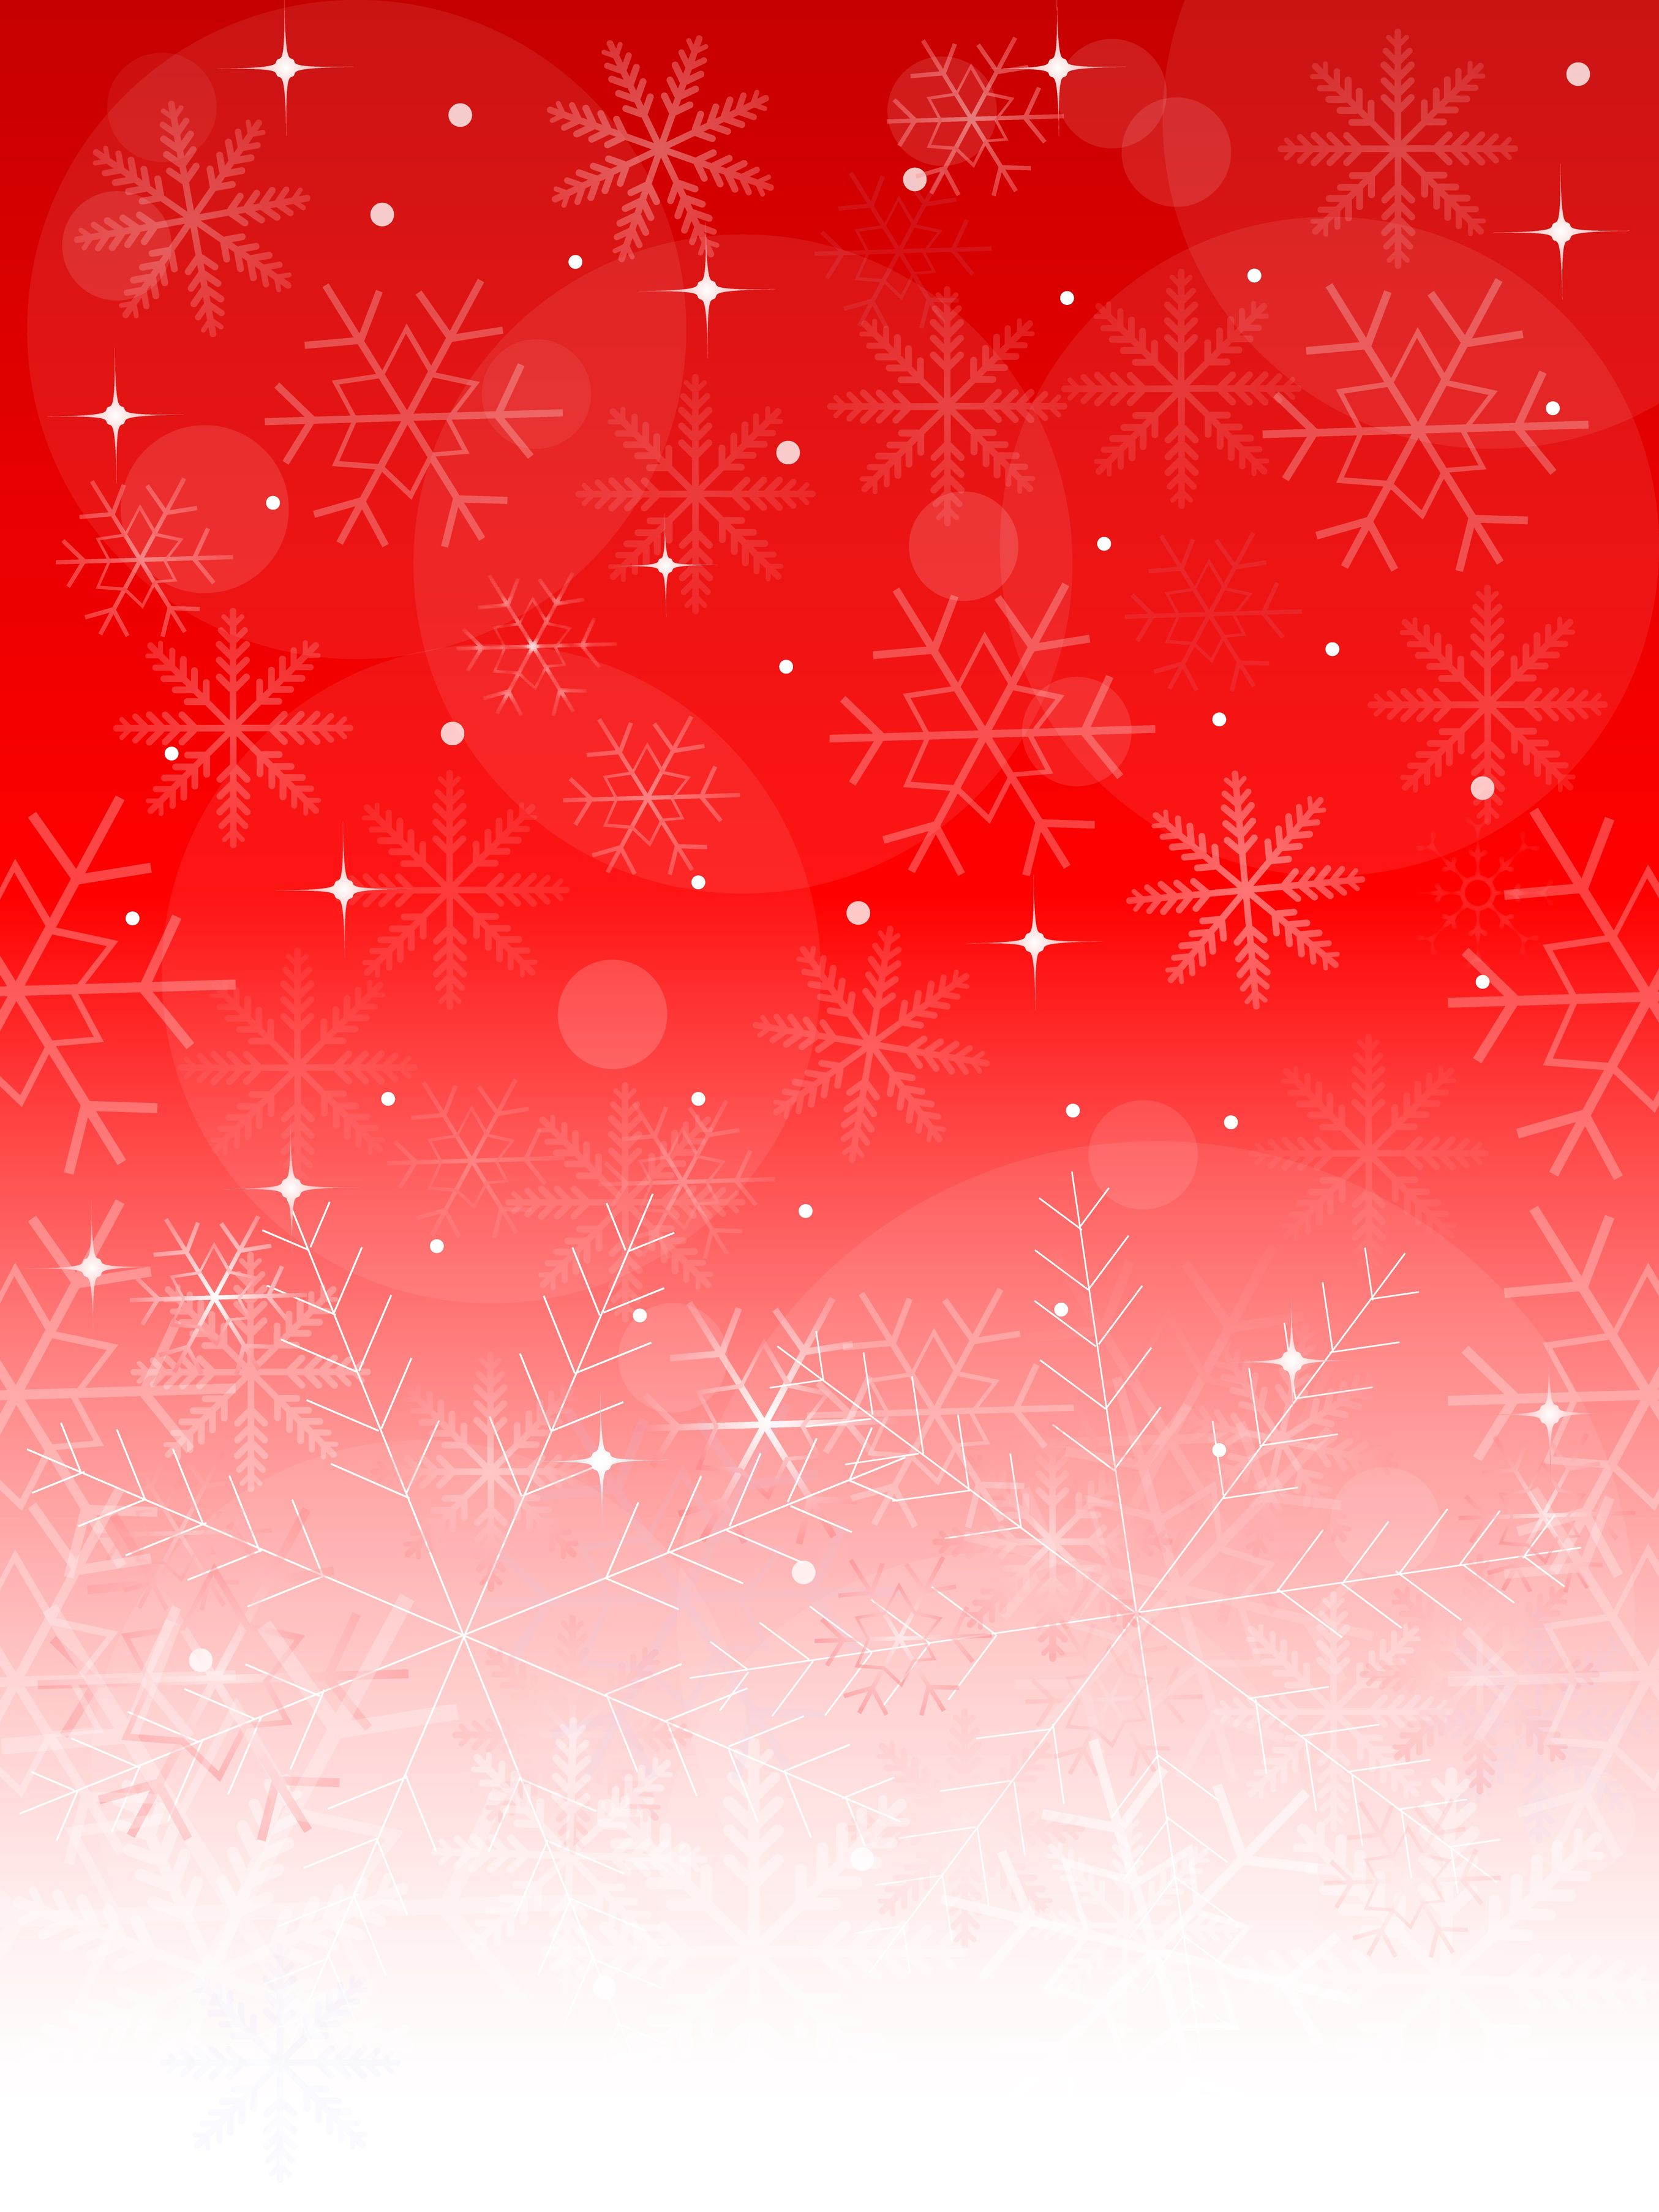 red background with white snowflakes